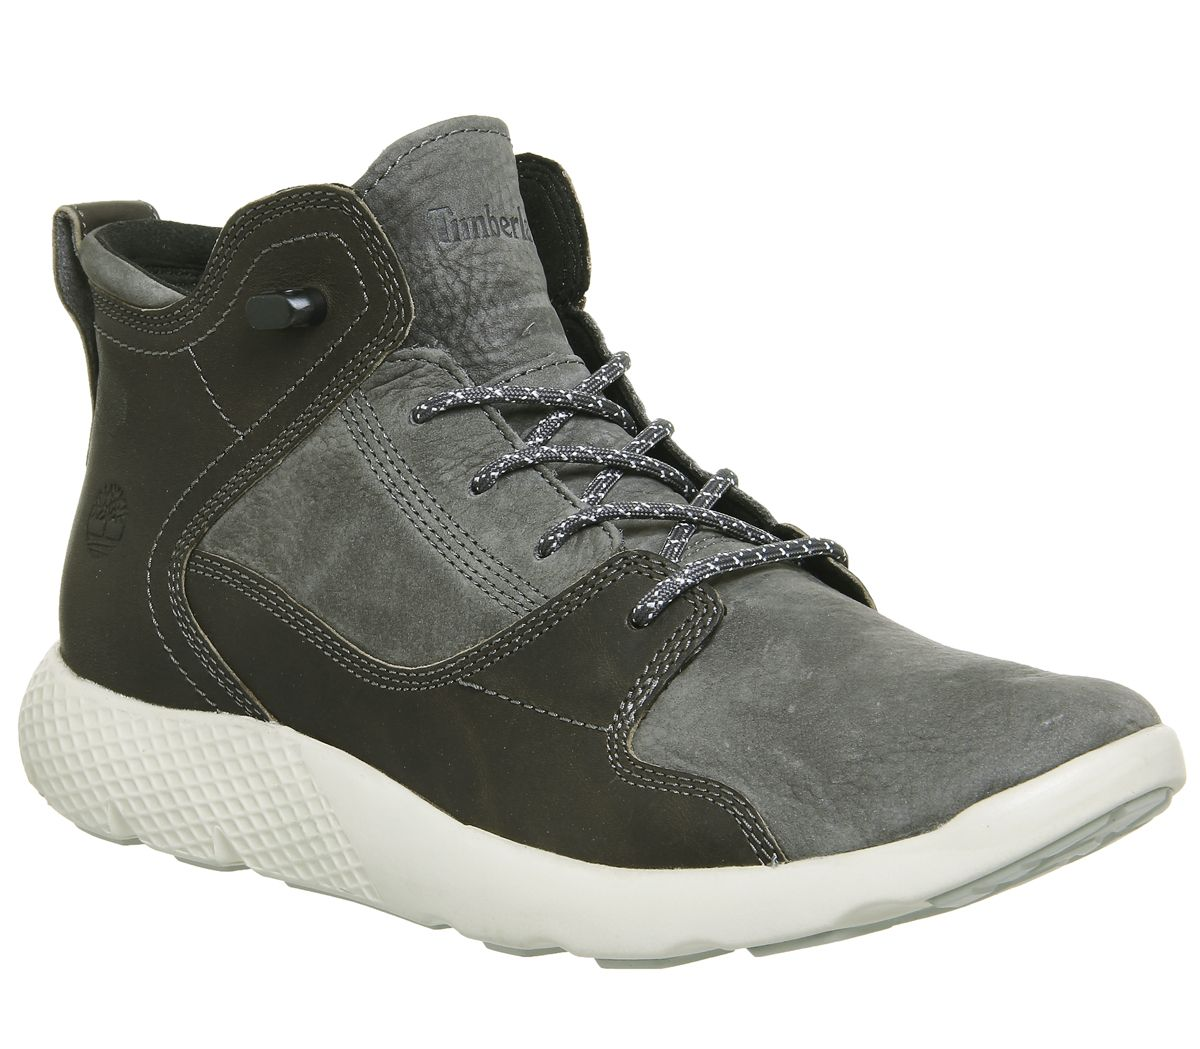 ad47ff347b0 Timberland Flyroam Leather Hiker Boots Grey - Casual